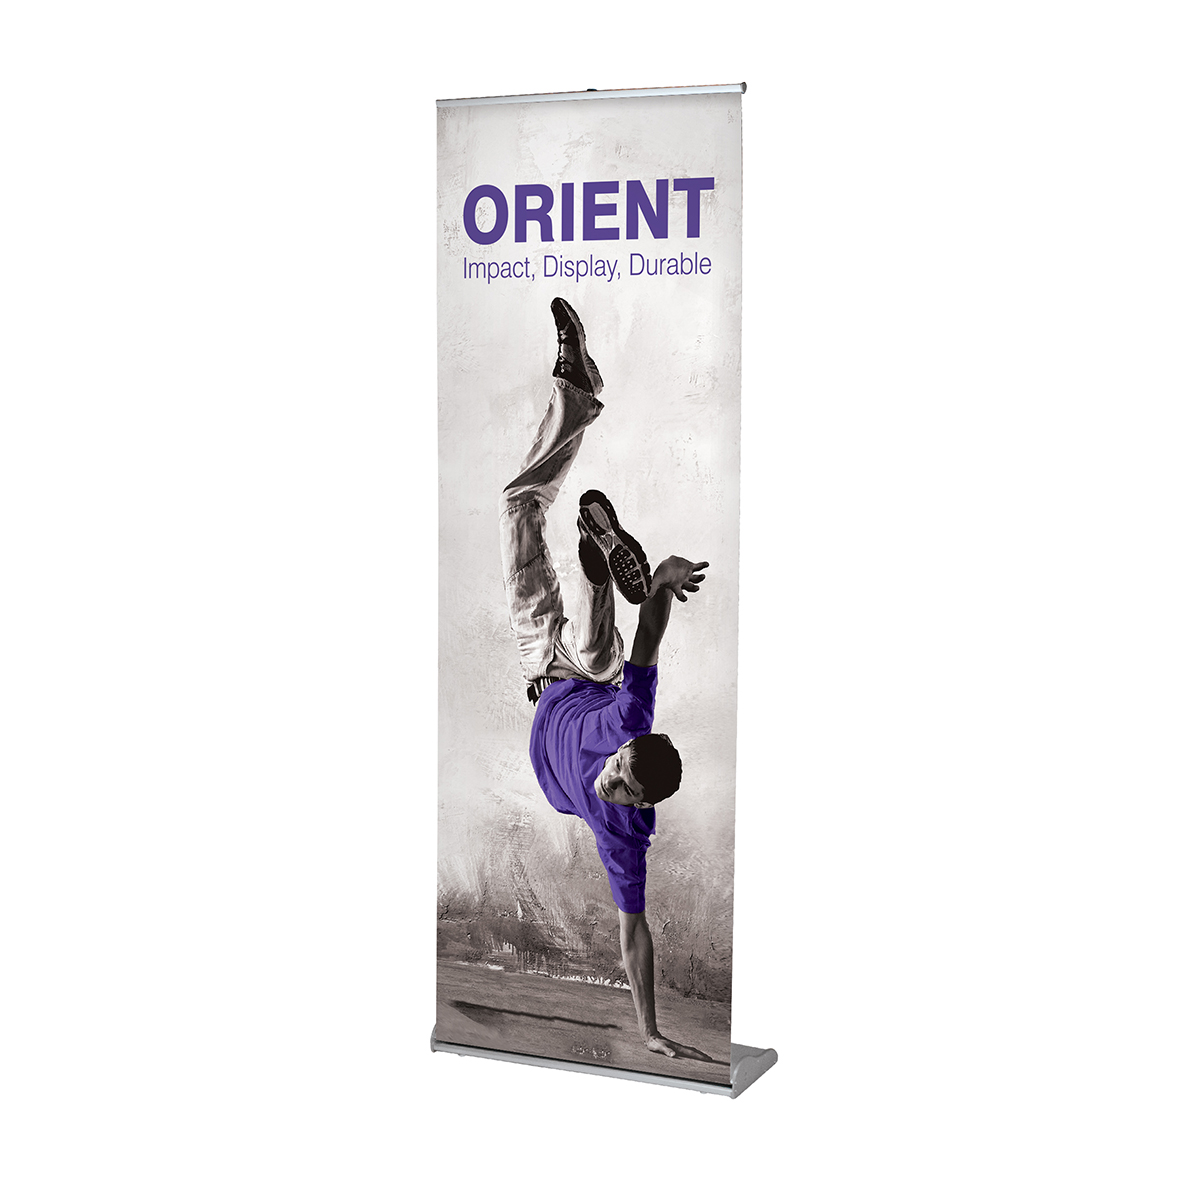 Front of an orient banner. Features a break dancer with a purple t-shirt.